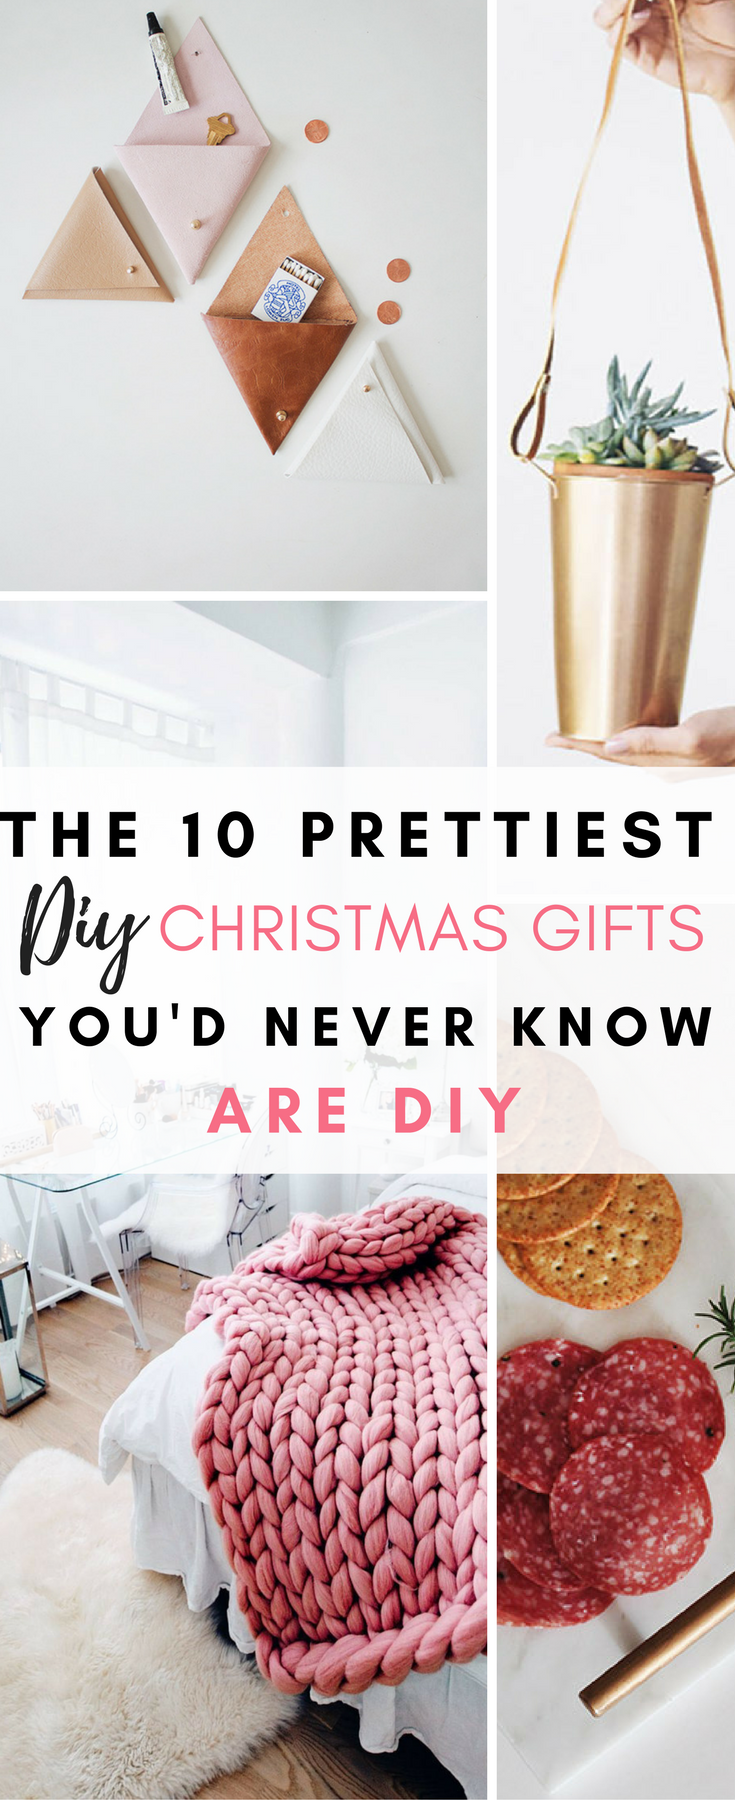 These are so gorgeous, and definitely do not look like DIY Christmas gifts in any way shape or form! #diychristmas #diychristmasgift